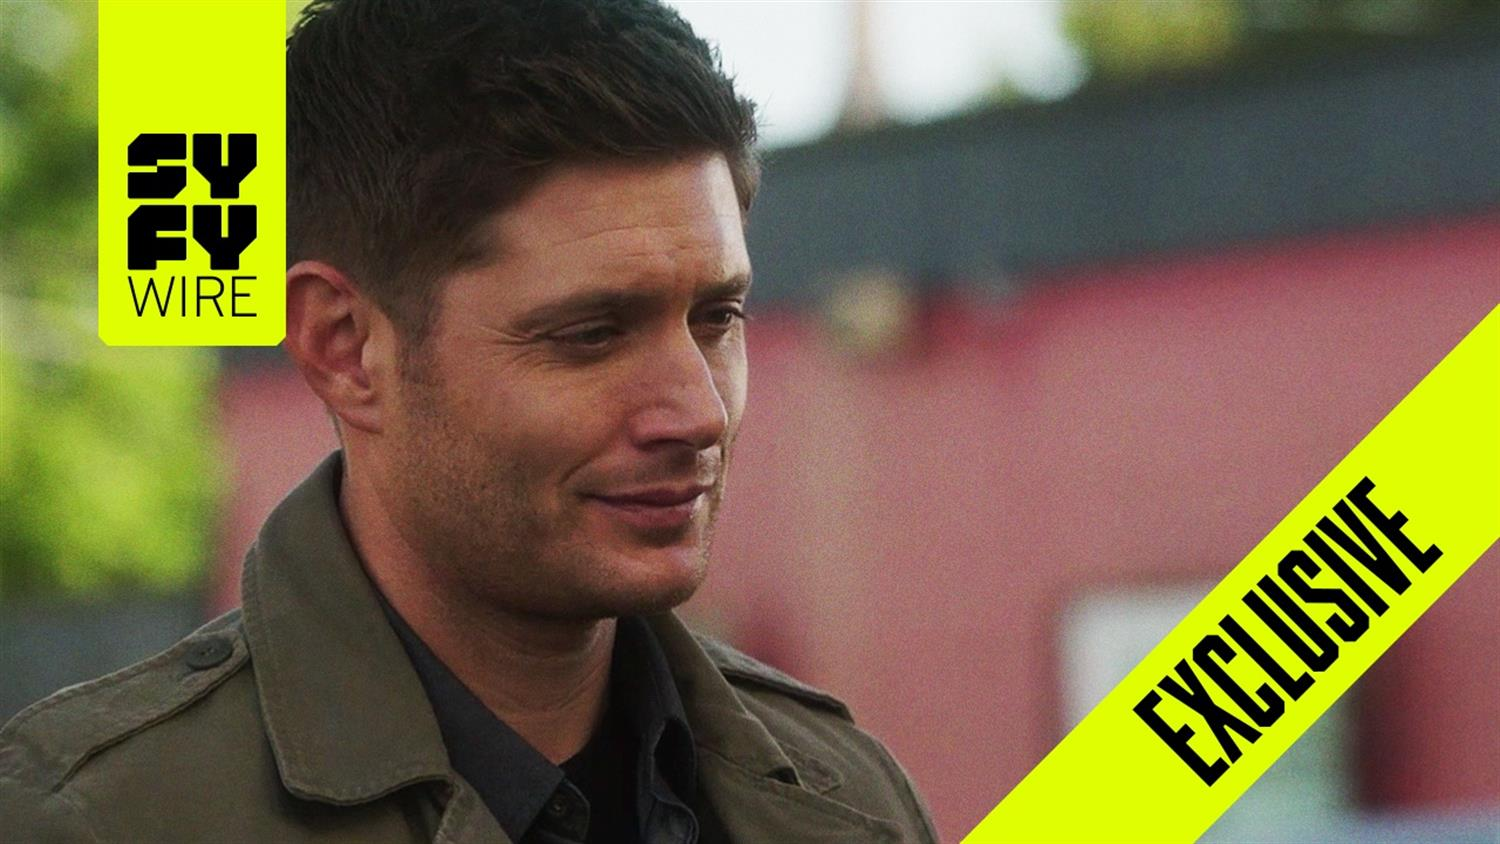 Dean Winchester Makes Father Proud - Supernatural Season 13 Exclusive